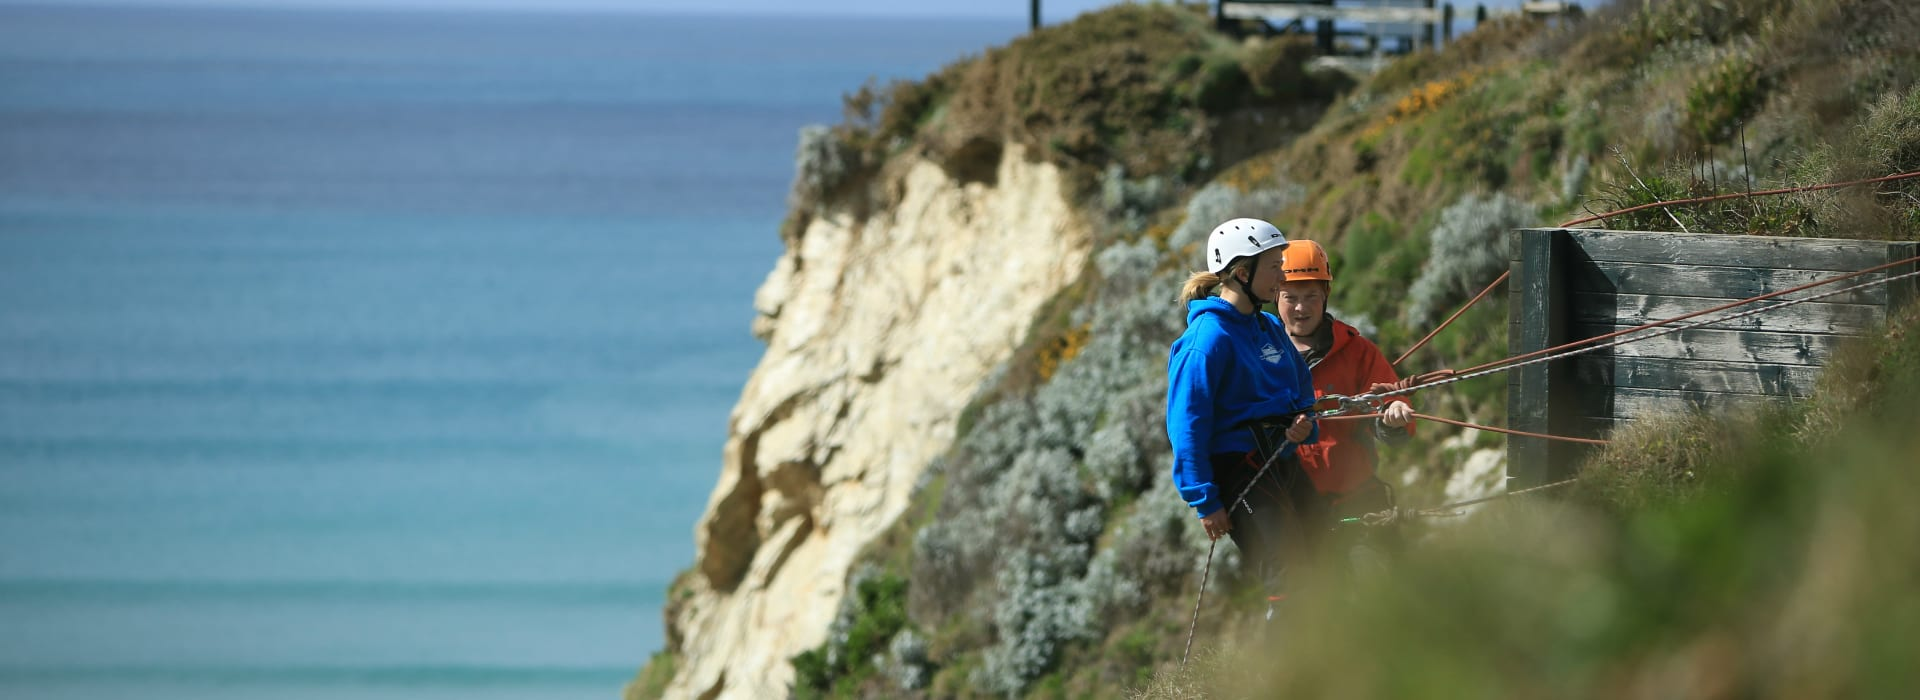 Abseiling Newquay Cornwall Family fun whatever the weather, family fun activity days out